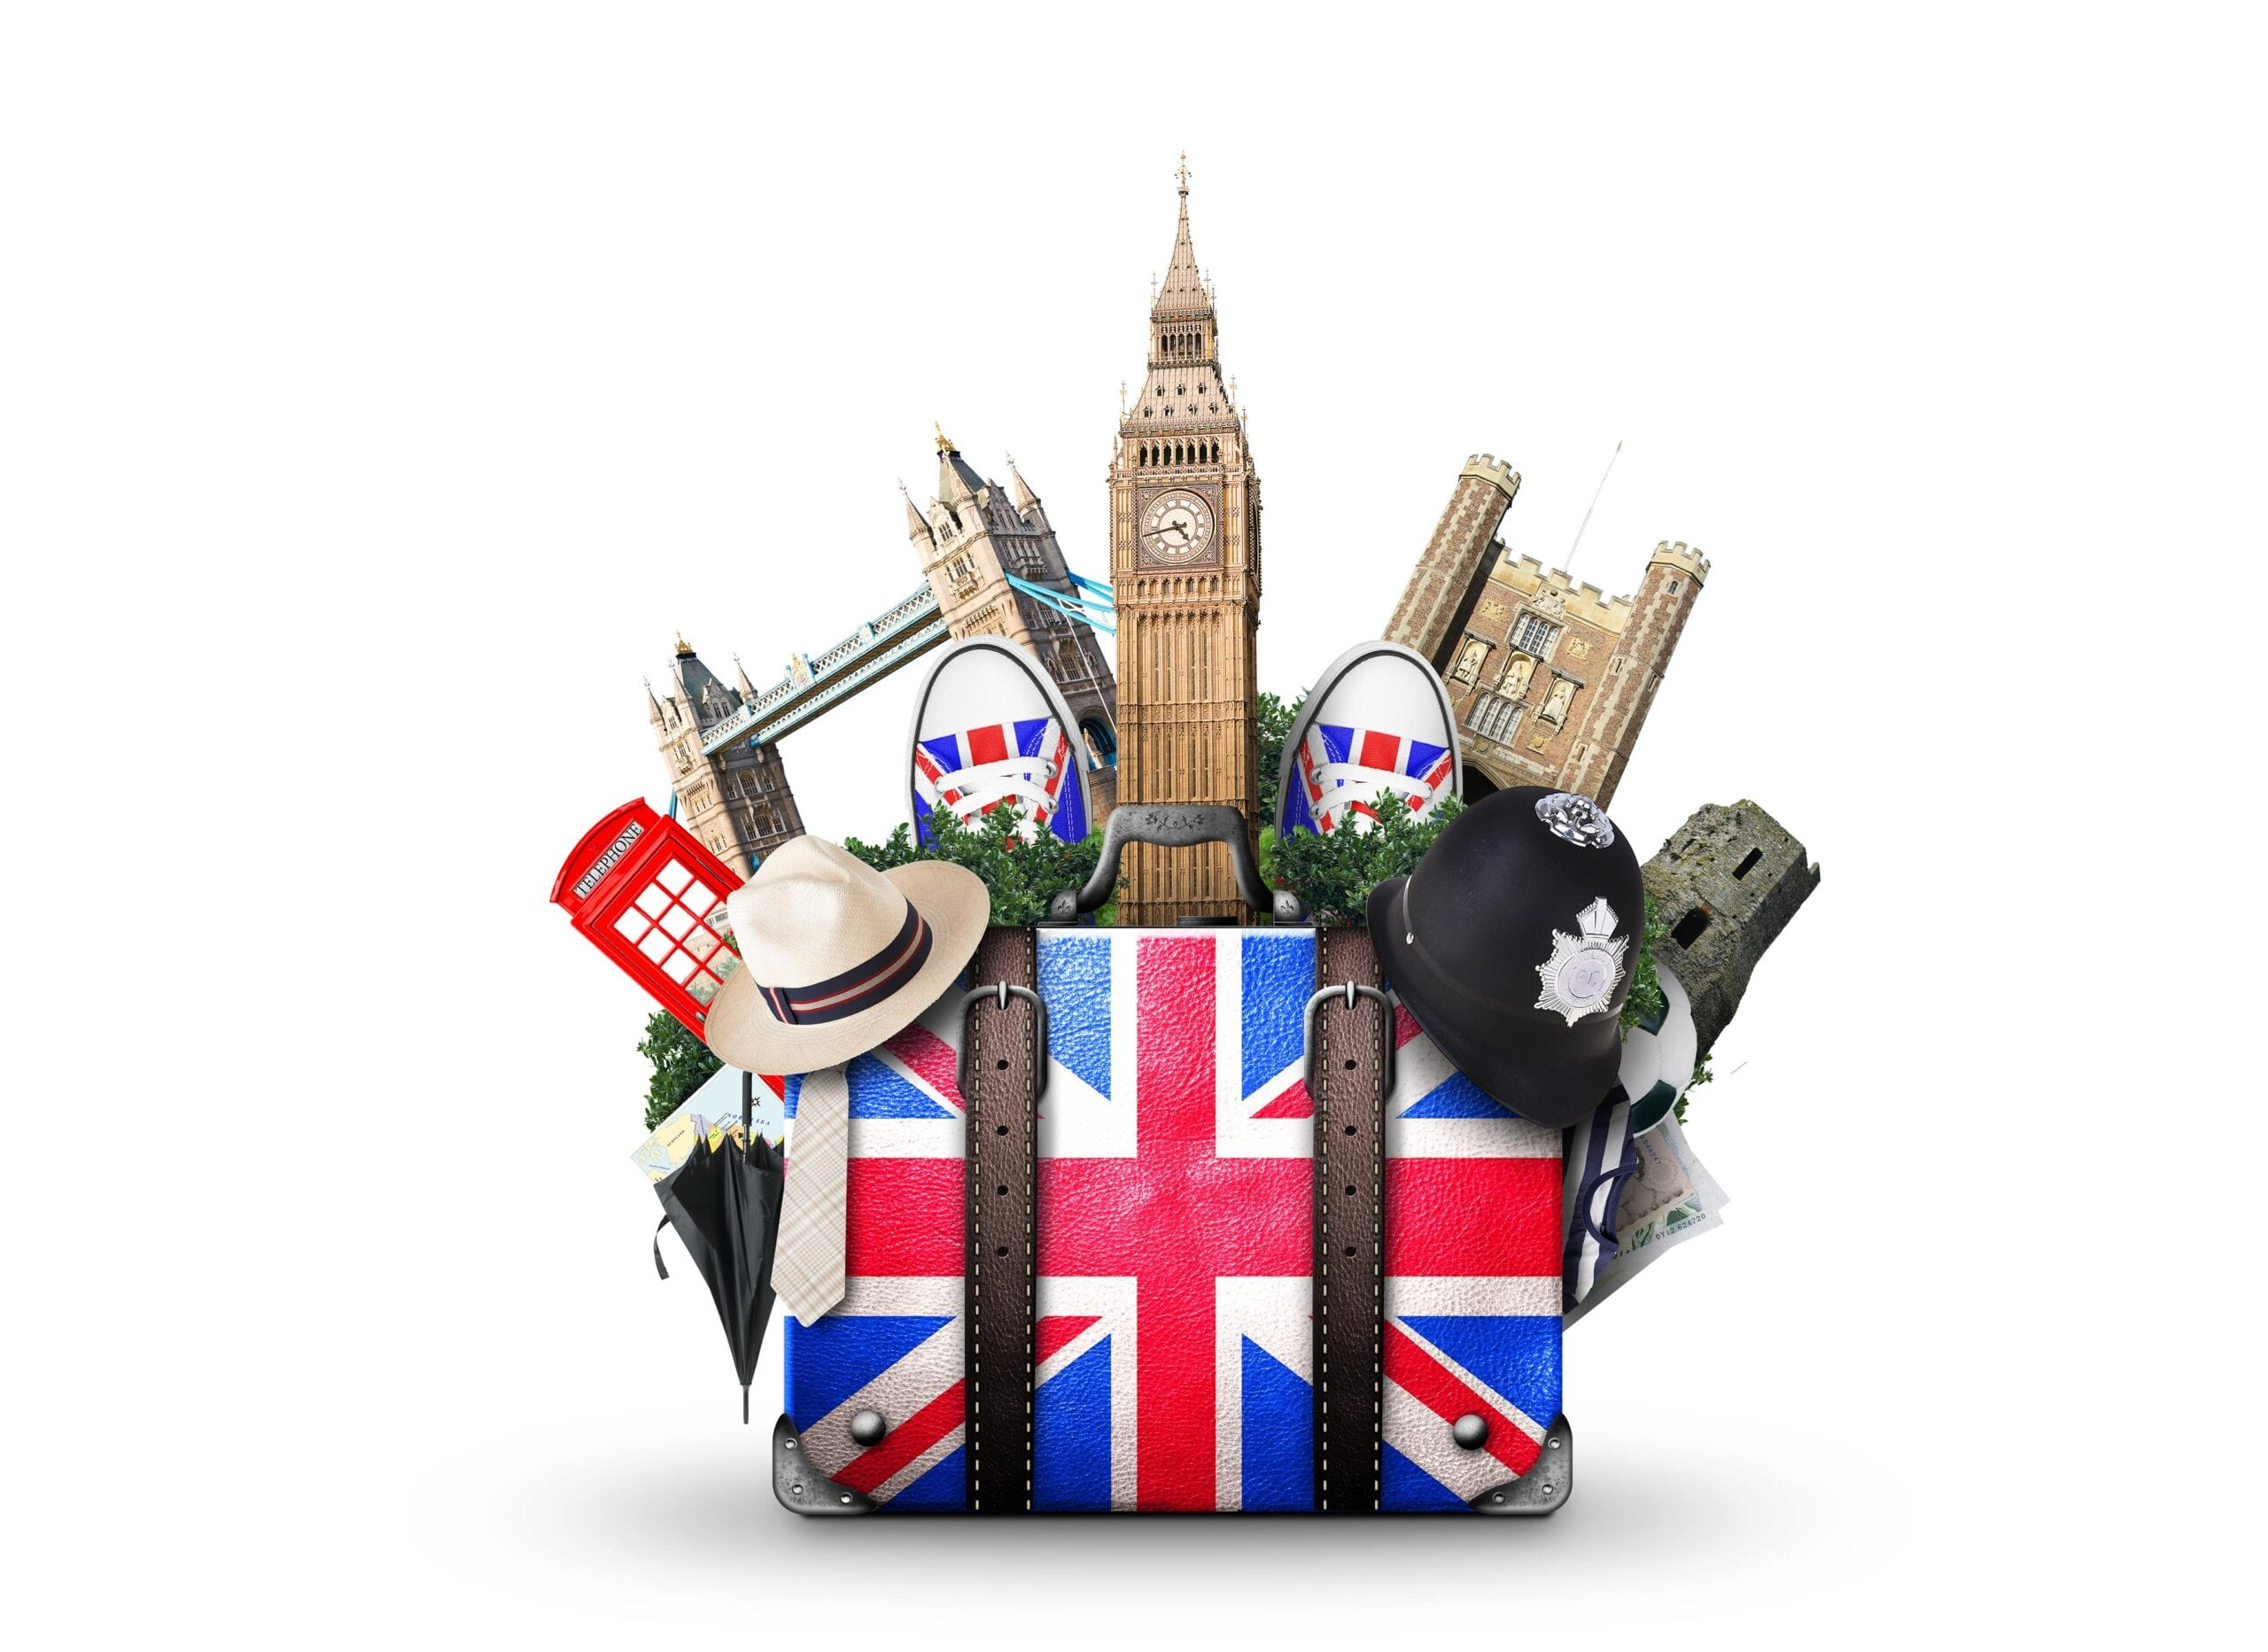 Image of a suitcase with England flag and England landmarks in the background